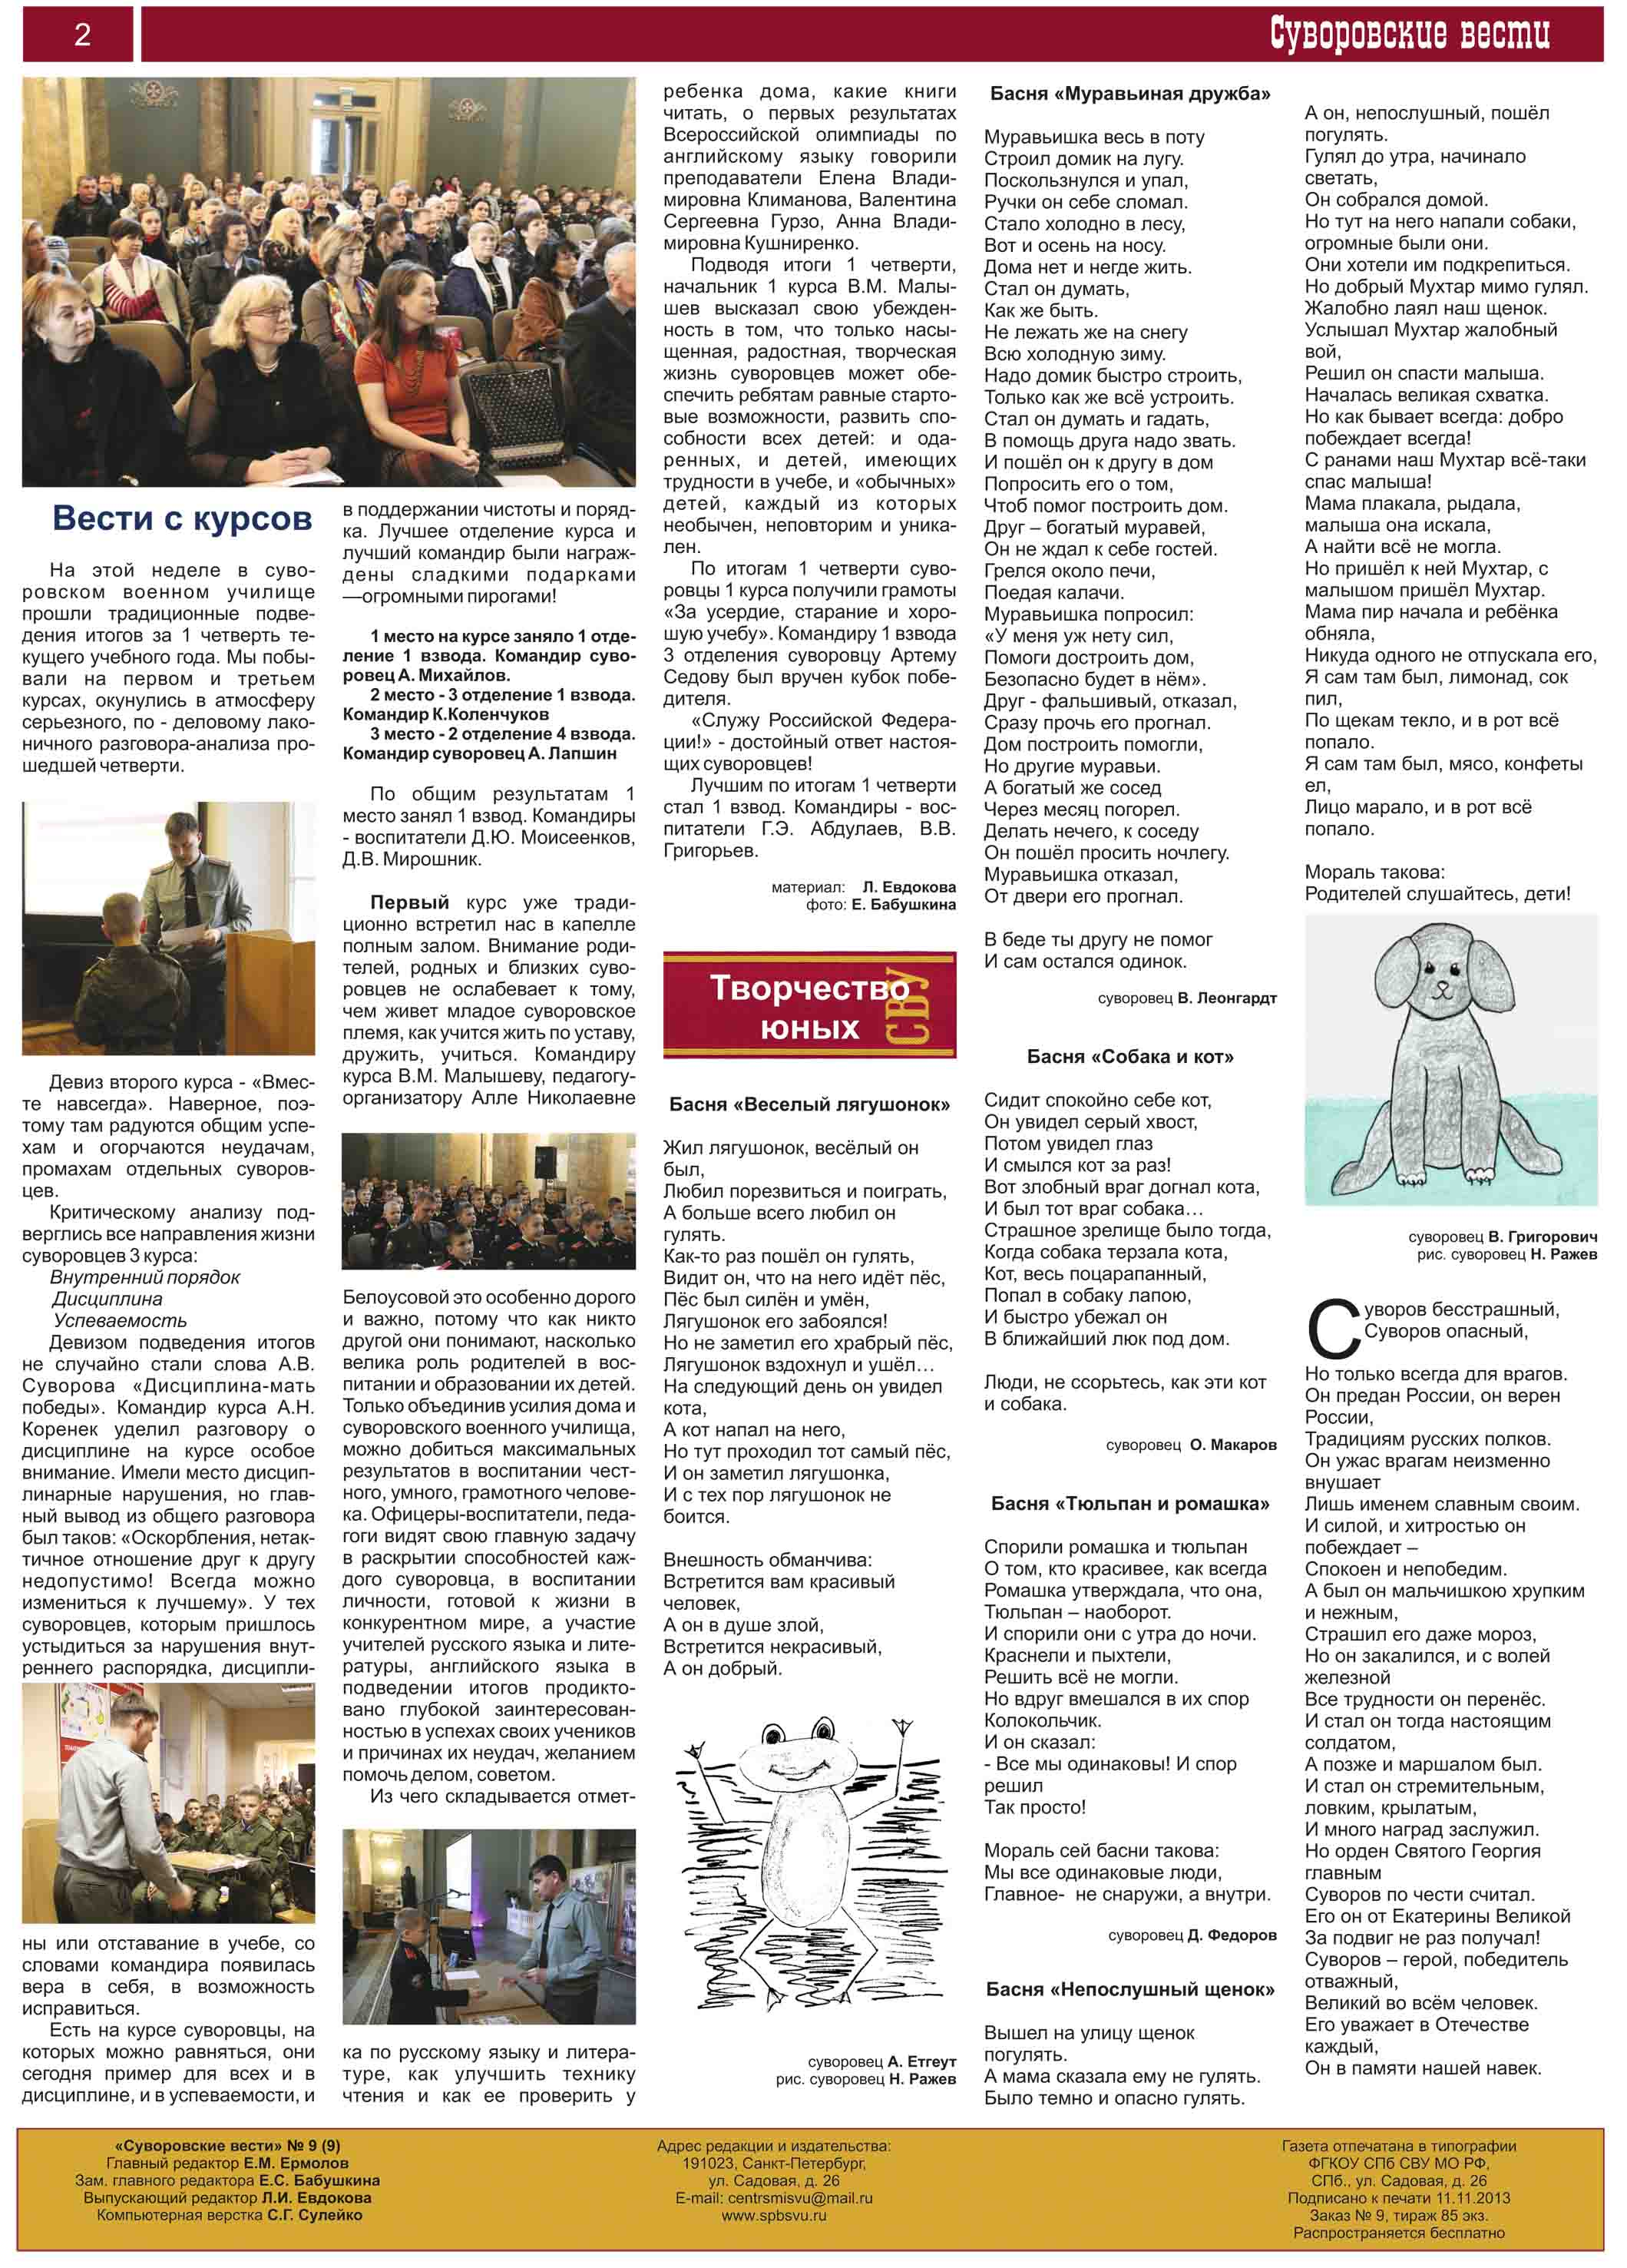 newsPaper_09.cdr